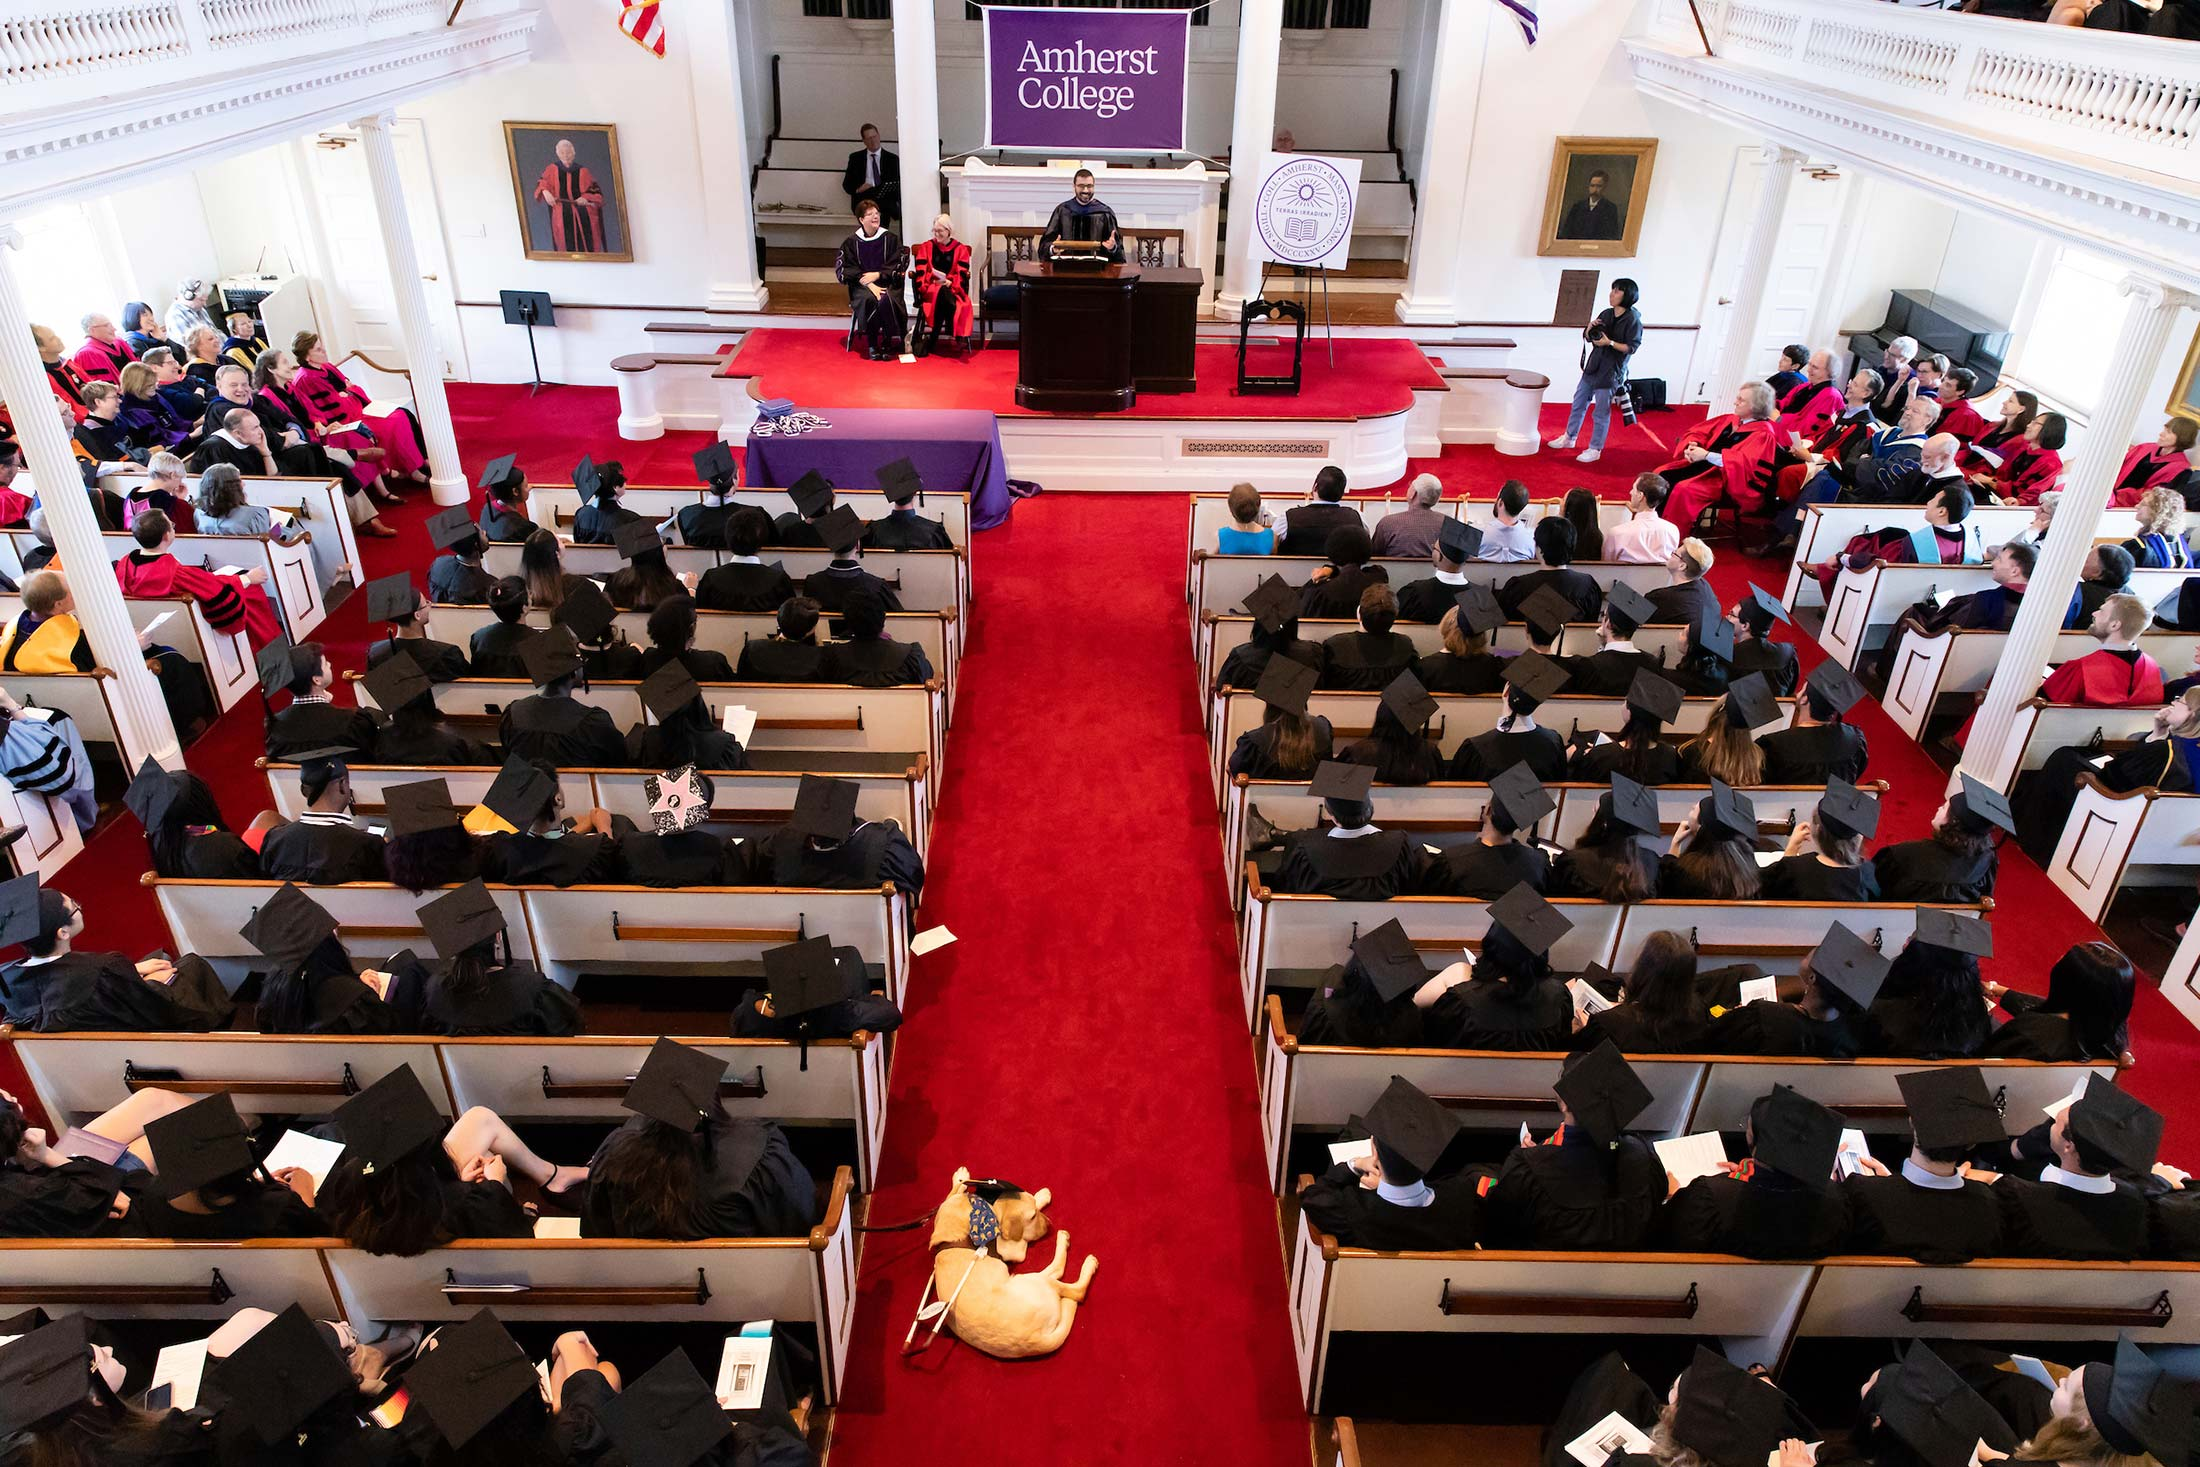 Student in commencement regalia gather in Johnson Chapel at Amherst College